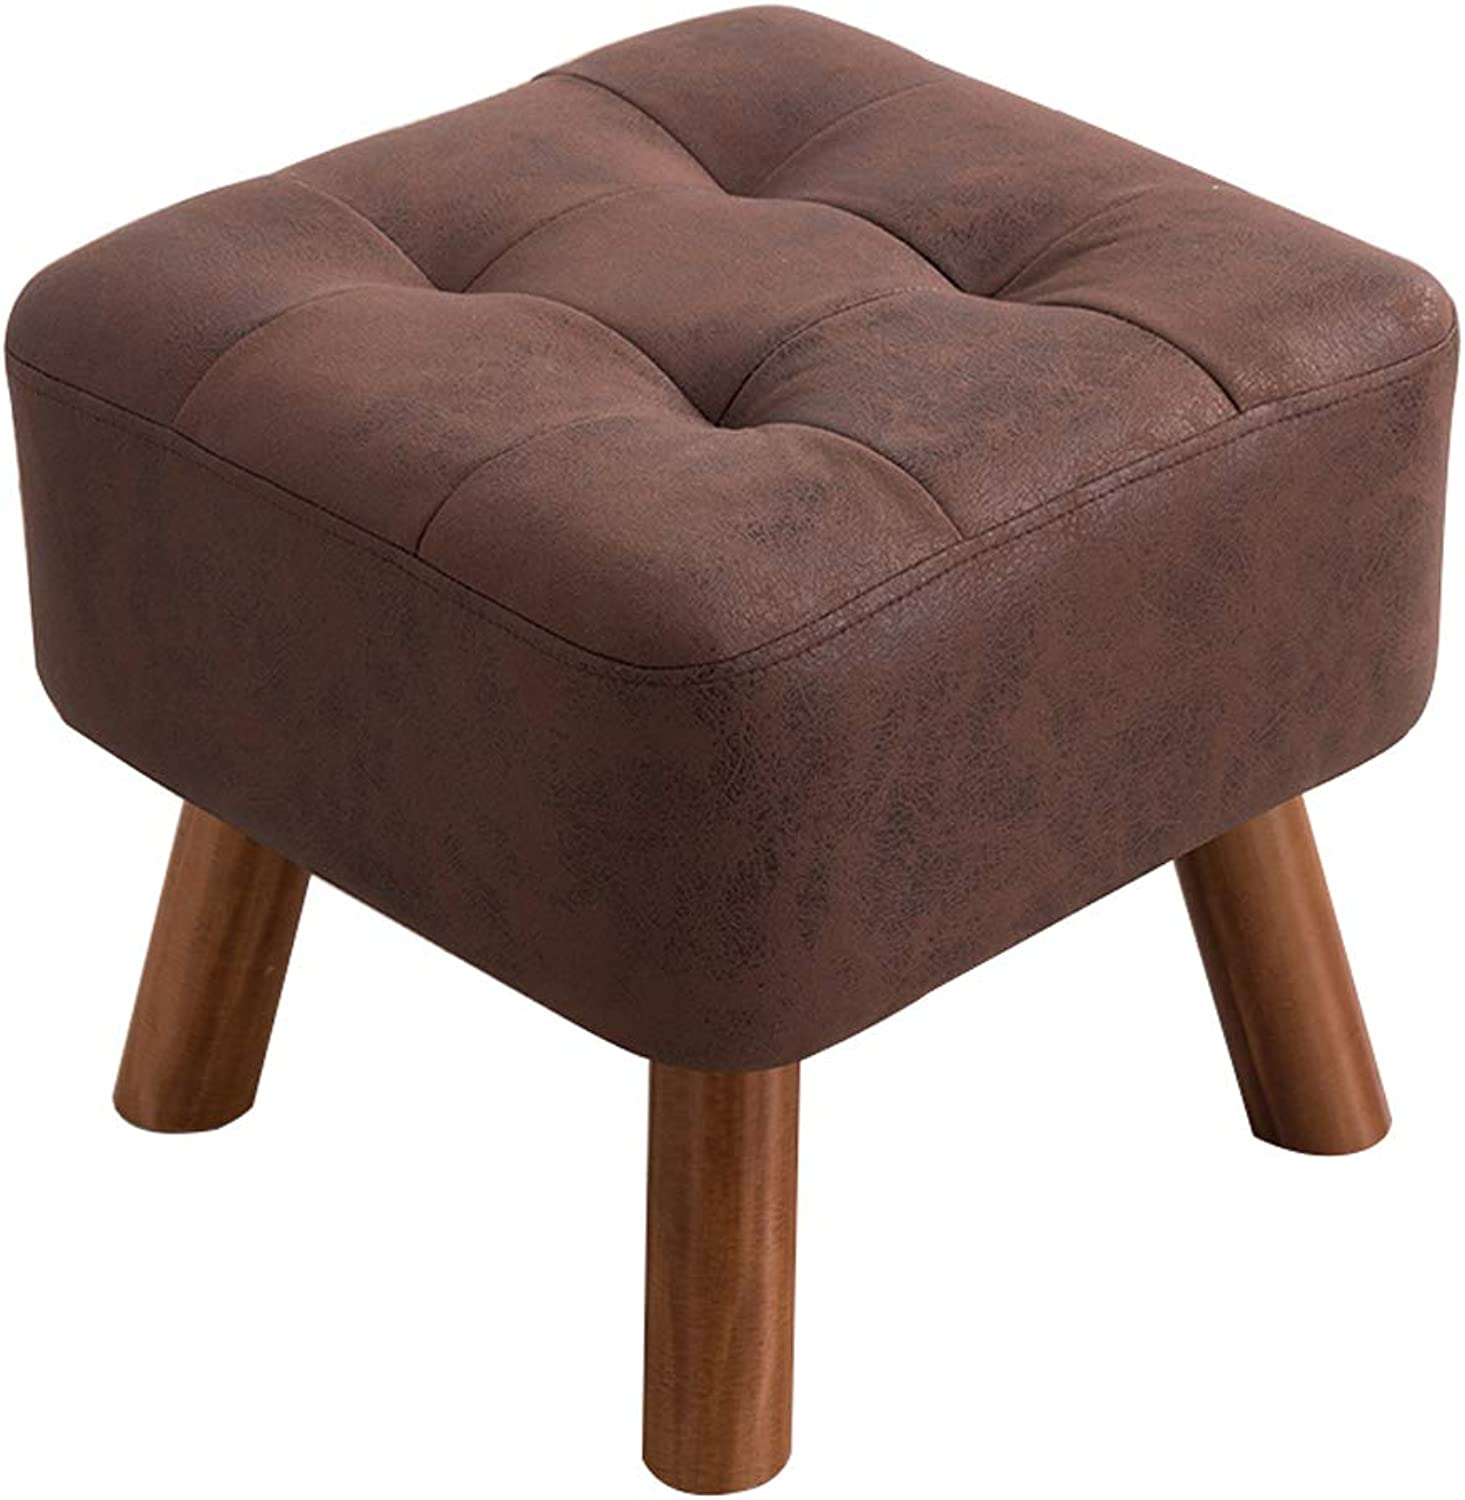 Change shoes Stool Solid Wood Stool Stool Fashion Creative Sofa Stool Coffee Table wear shoes Sitting pier Dressing Footstool shoes Bench (color   Dark Brown)